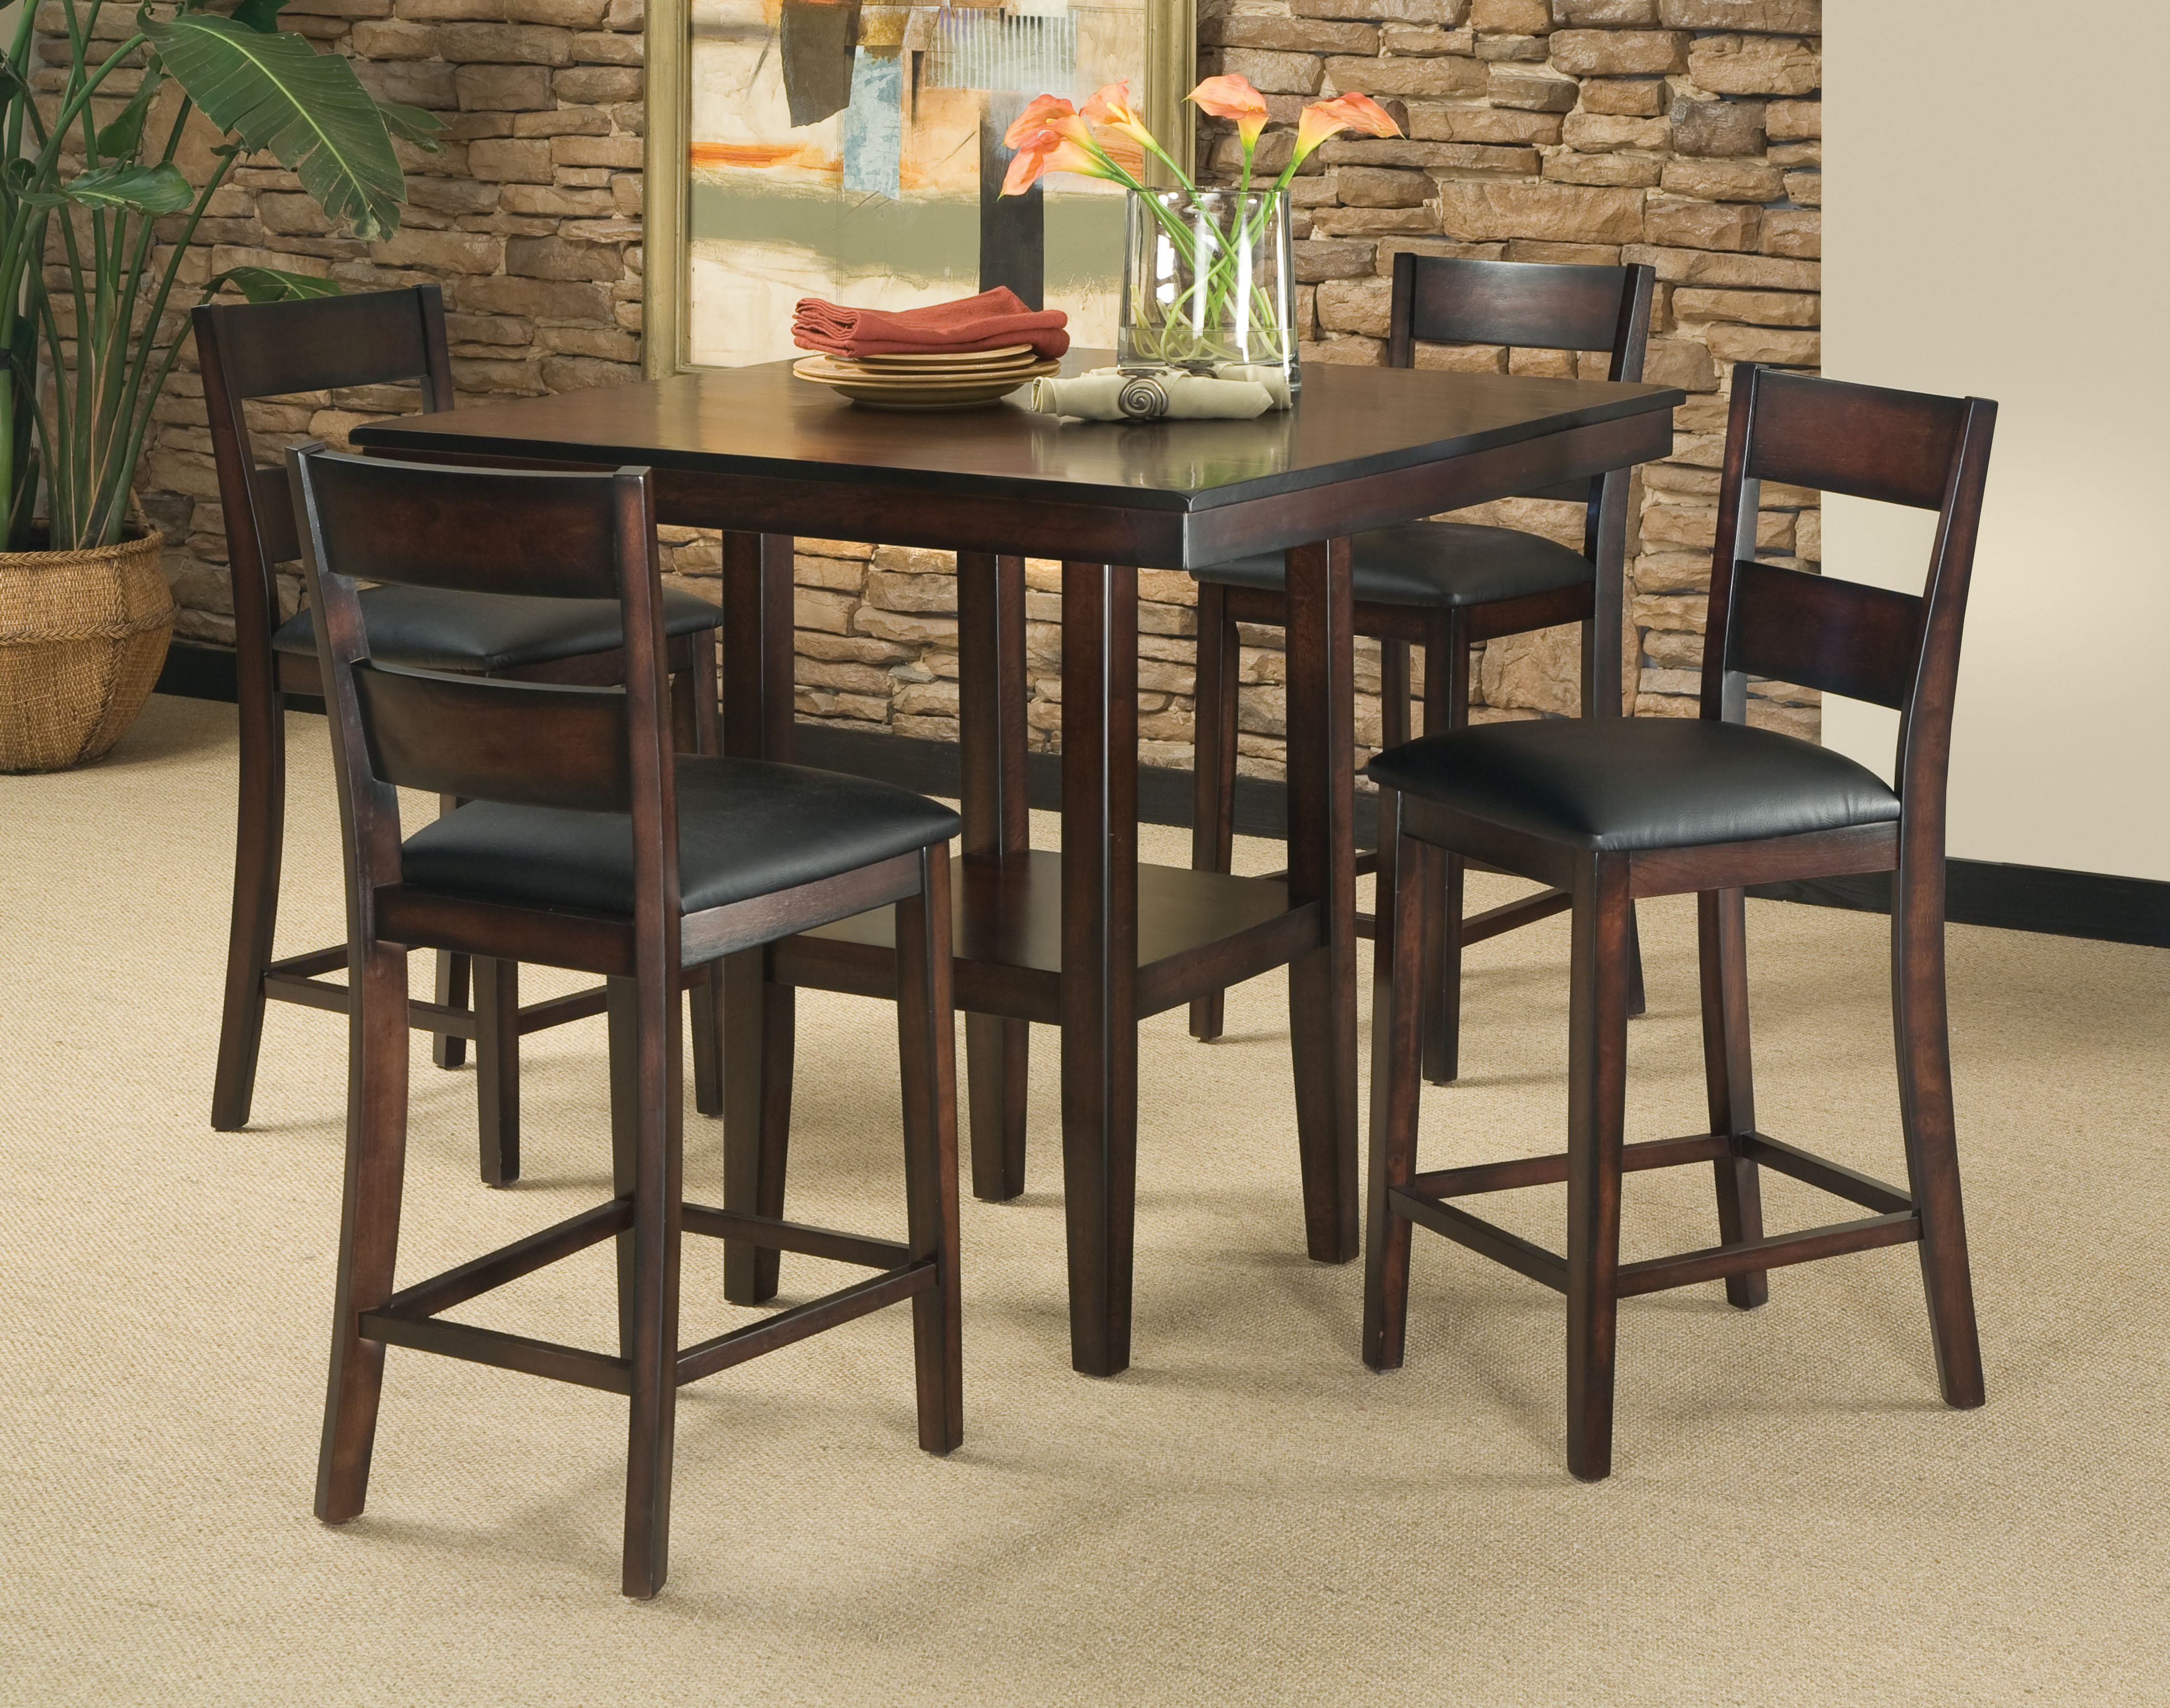 dark wooden counter height dinette table set with chairs in room with rocks design - Bar Height Kitchen Table Sets